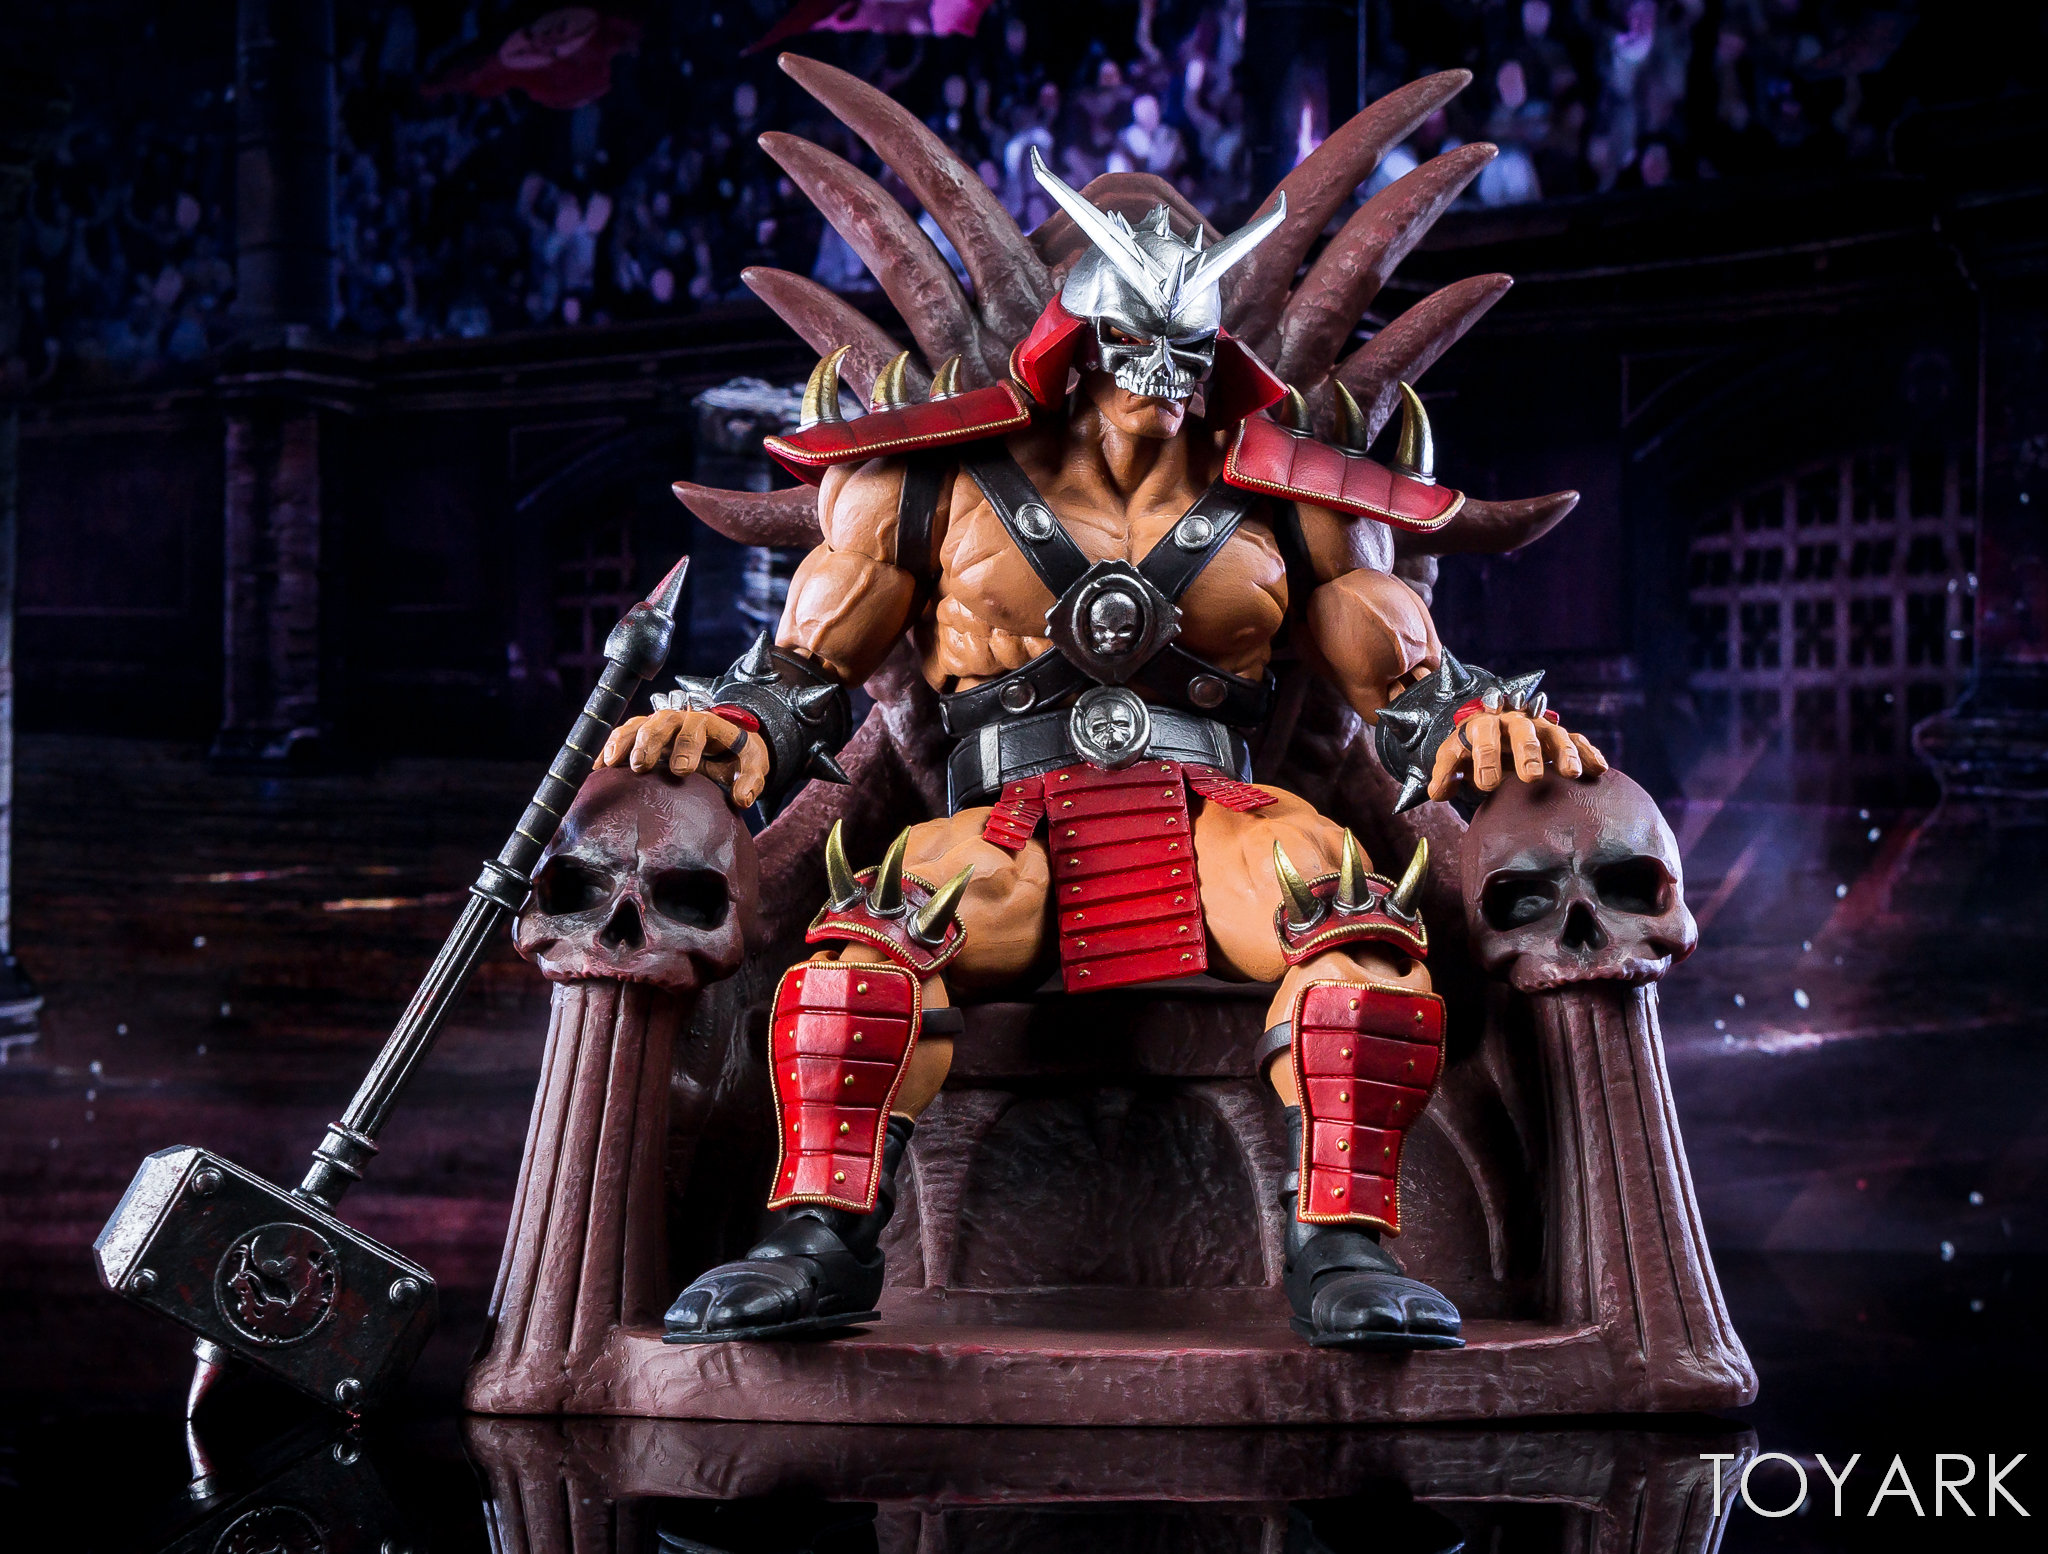 https://news.toyark.com/wp-content/uploads/sites/4/2018/06/Storm-Mortal-Kombat-Shao-Kahn-Figure-020.jpg